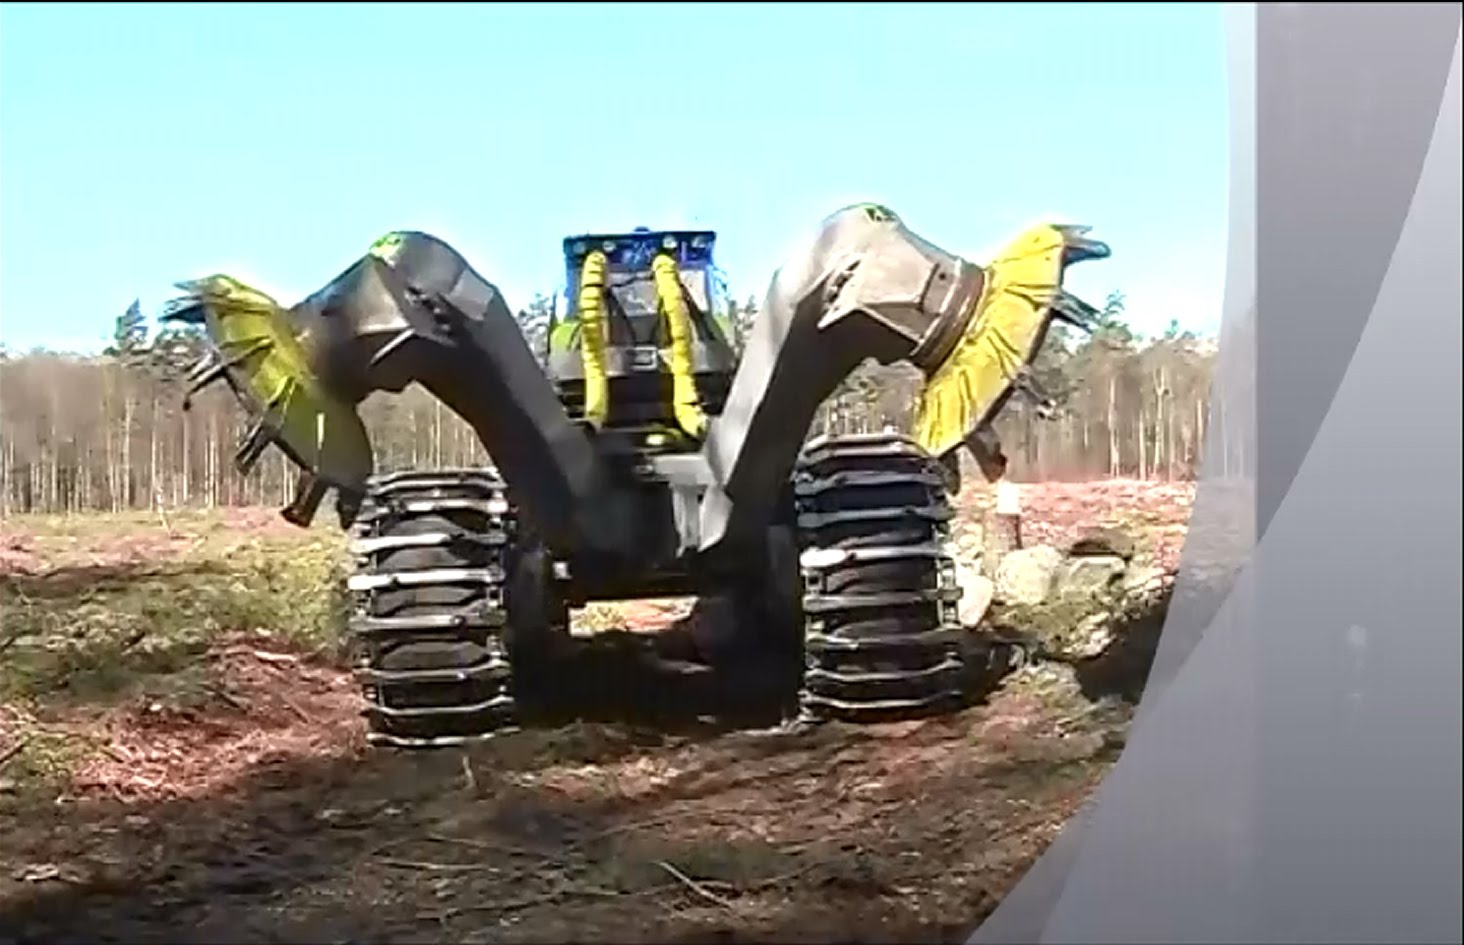 Wonderfully Designed Disc Trencher, The Scarifier